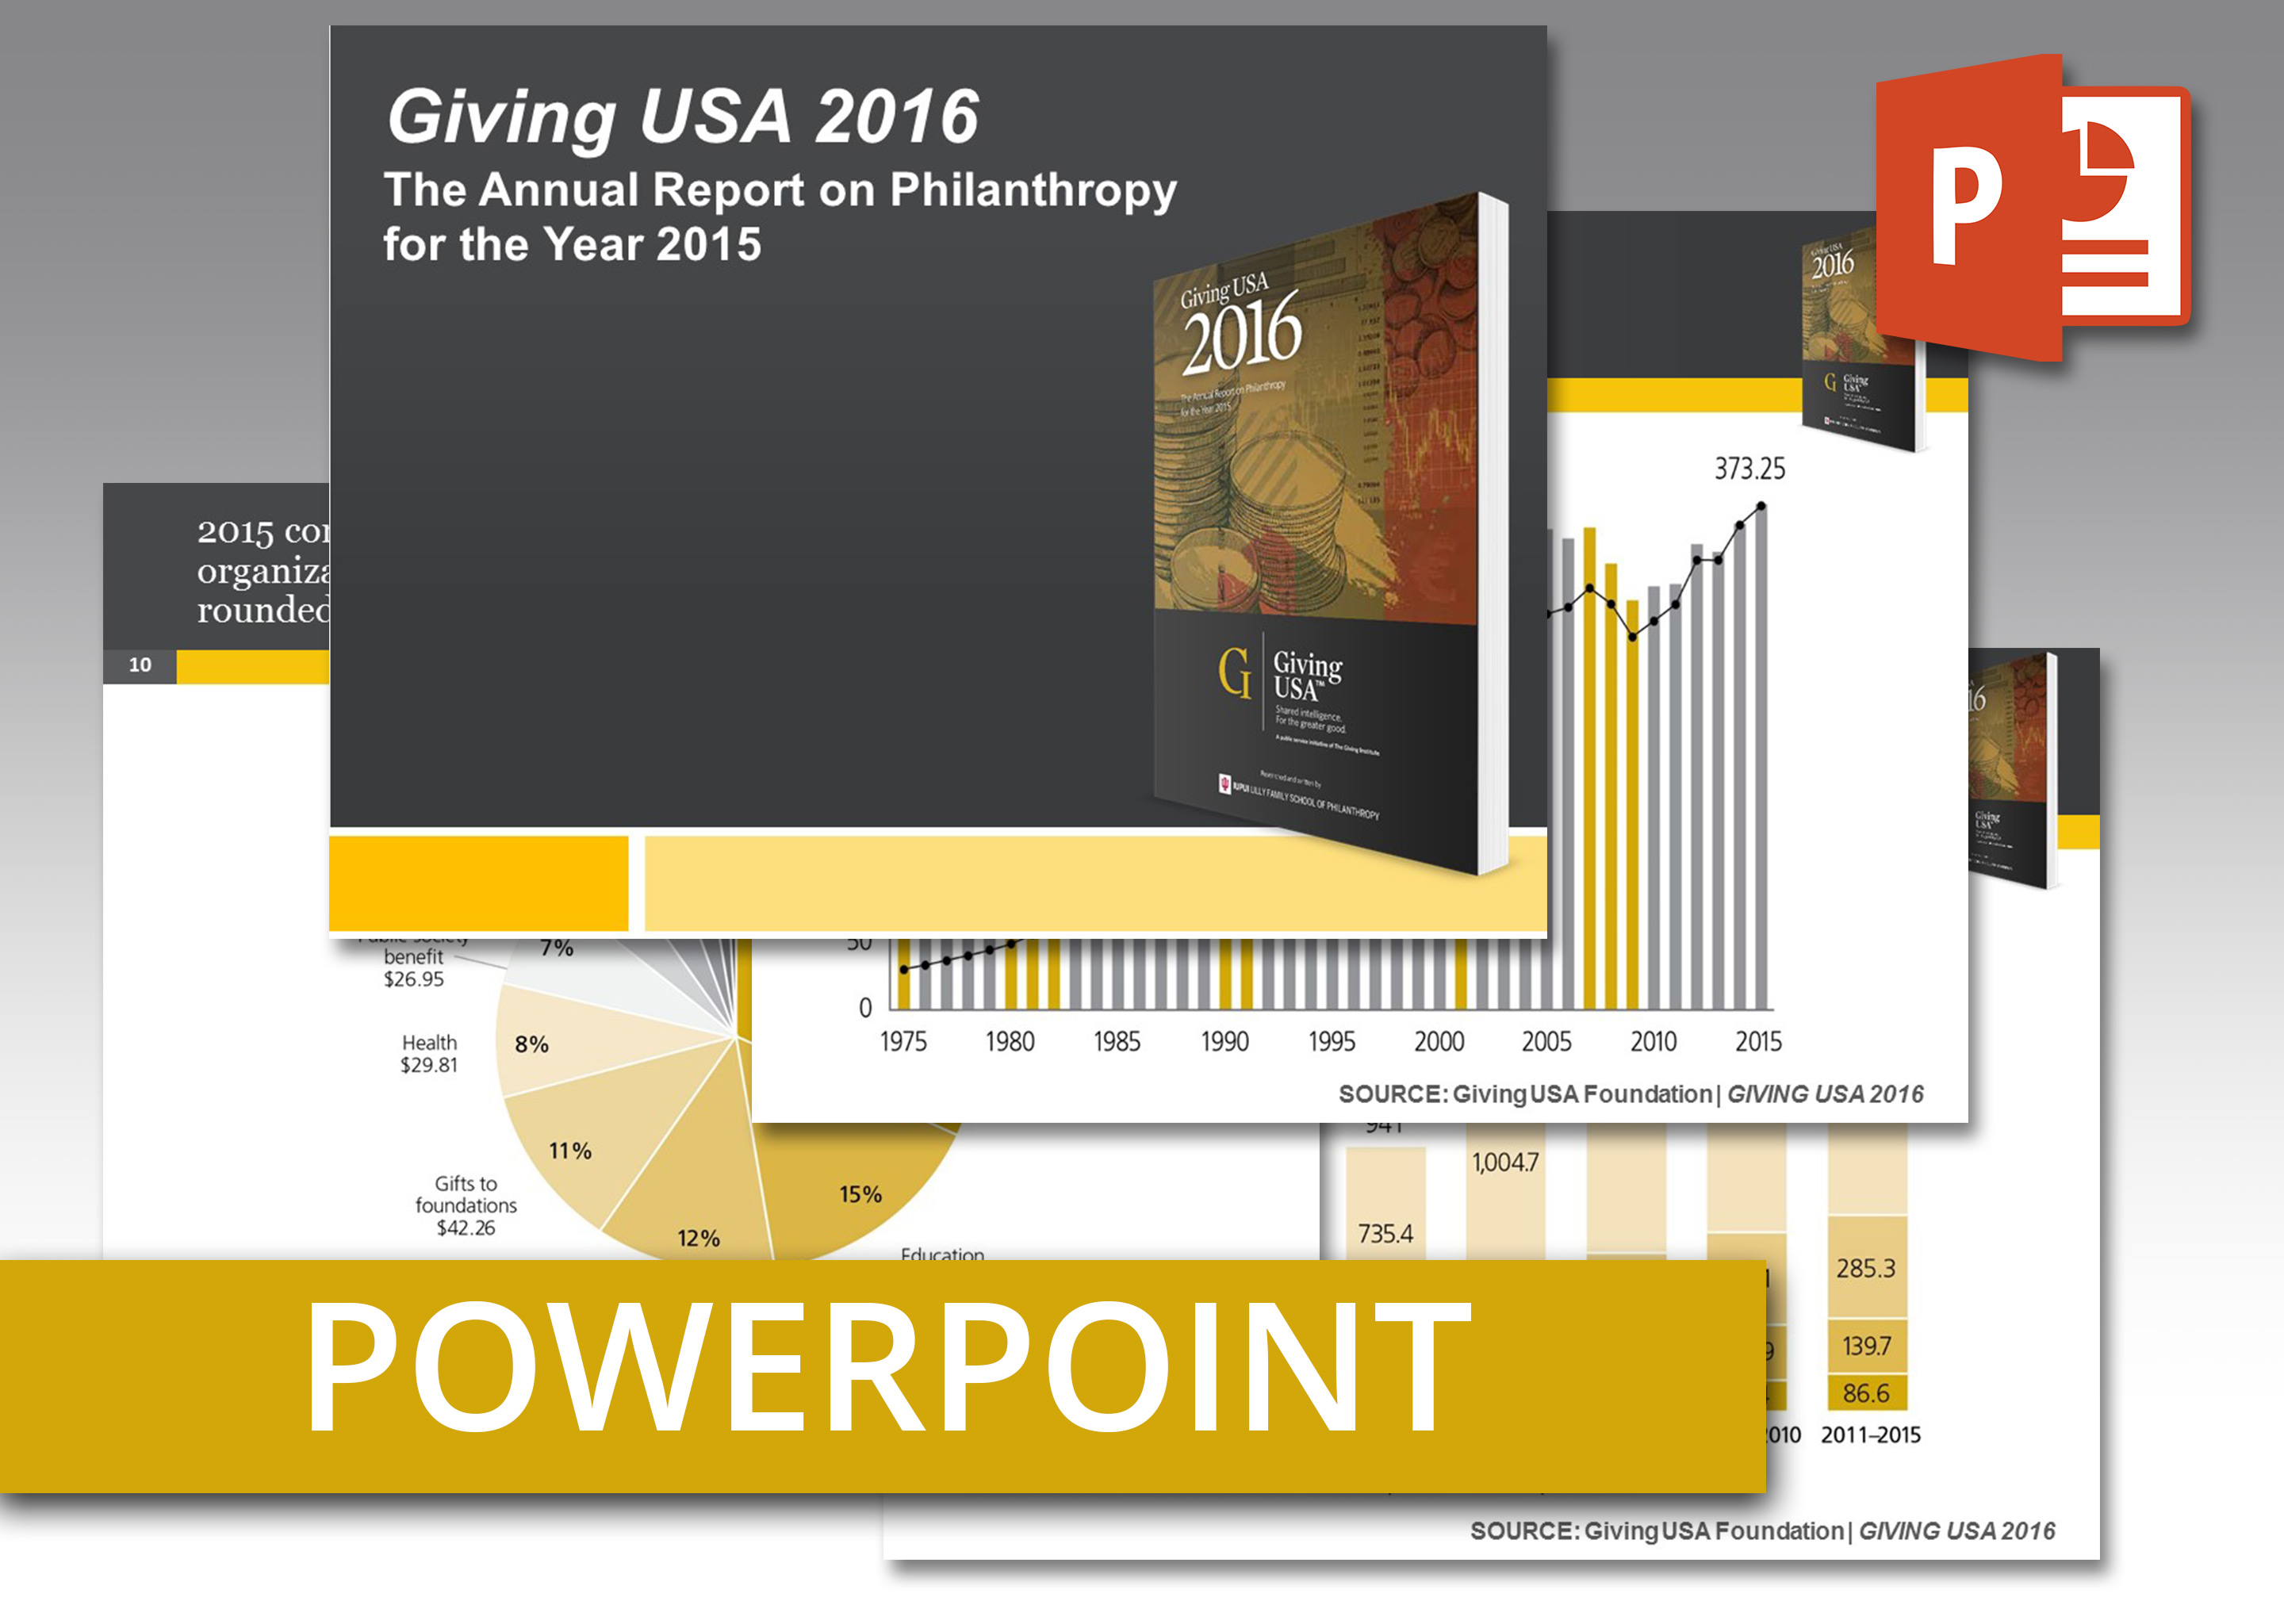 Usdgus  Splendid Giving Usa  Powerpoint An Easytouse Presentation Of Report  With Heavenly Giving Usa  Powerpoint An Easytouse Presentation Of Report Findings Including Talking Points With Lovely Powerpoint Mobile App Also Microsoft Powerpoint For Mac Download In Addition Human Reproduction Powerpoint And Microsoft Powerpoint  Themes As Well As Free Poster Template Powerpoint Additionally Powerpoint Image Compression From Givingusaorg With Usdgus  Heavenly Giving Usa  Powerpoint An Easytouse Presentation Of Report  With Lovely Giving Usa  Powerpoint An Easytouse Presentation Of Report Findings Including Talking Points And Splendid Powerpoint Mobile App Also Microsoft Powerpoint For Mac Download In Addition Human Reproduction Powerpoint From Givingusaorg